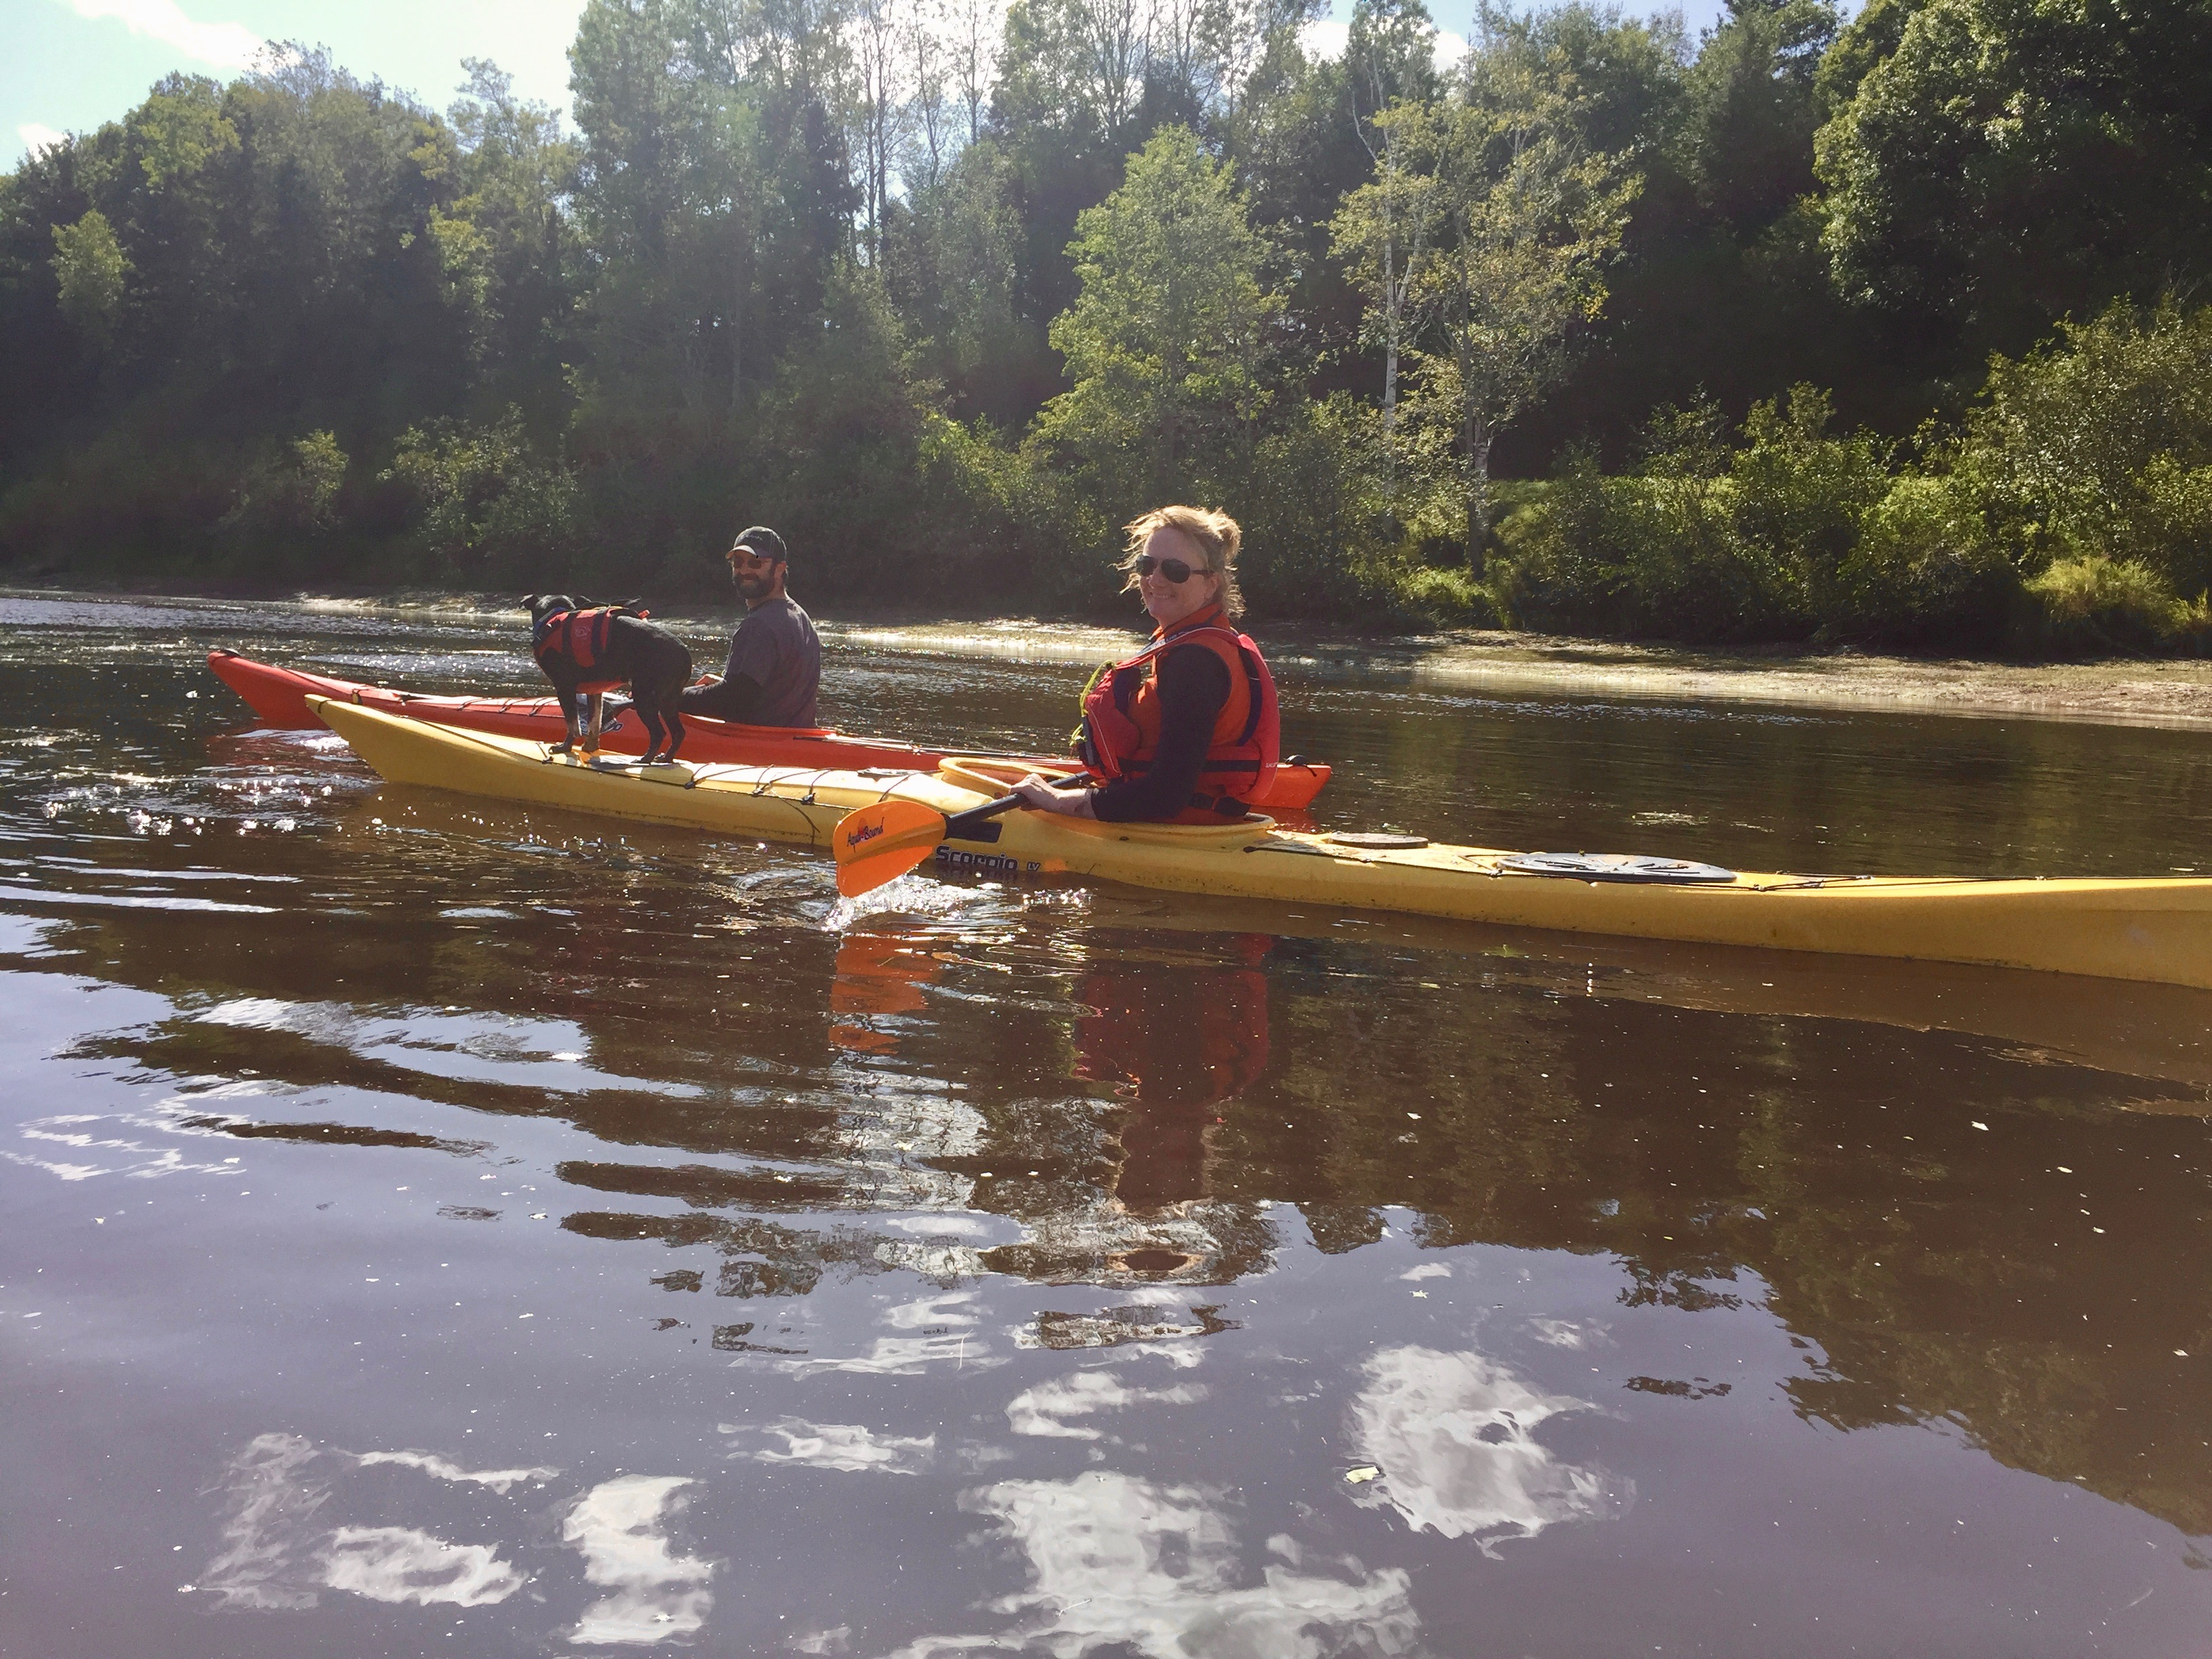 Windsor, Nova Scotia - Kayaking on the Avon River - Liz, Sam and Stanfield!